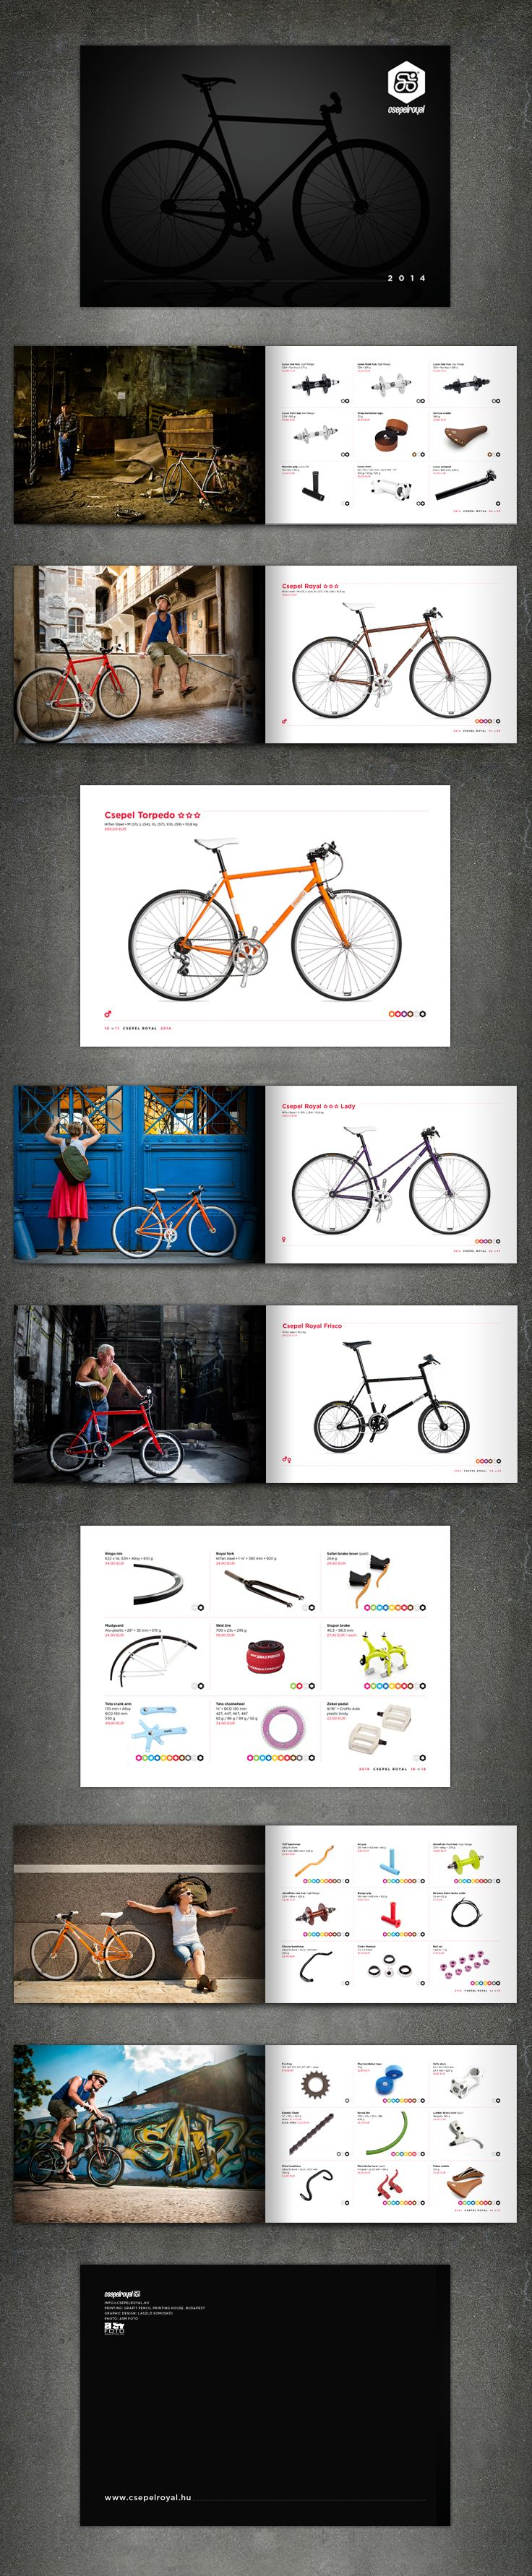 Csepel Royal Bicycle Catalogue, 2013. #typography #graphicdesign #catalogdesign #somoskoi